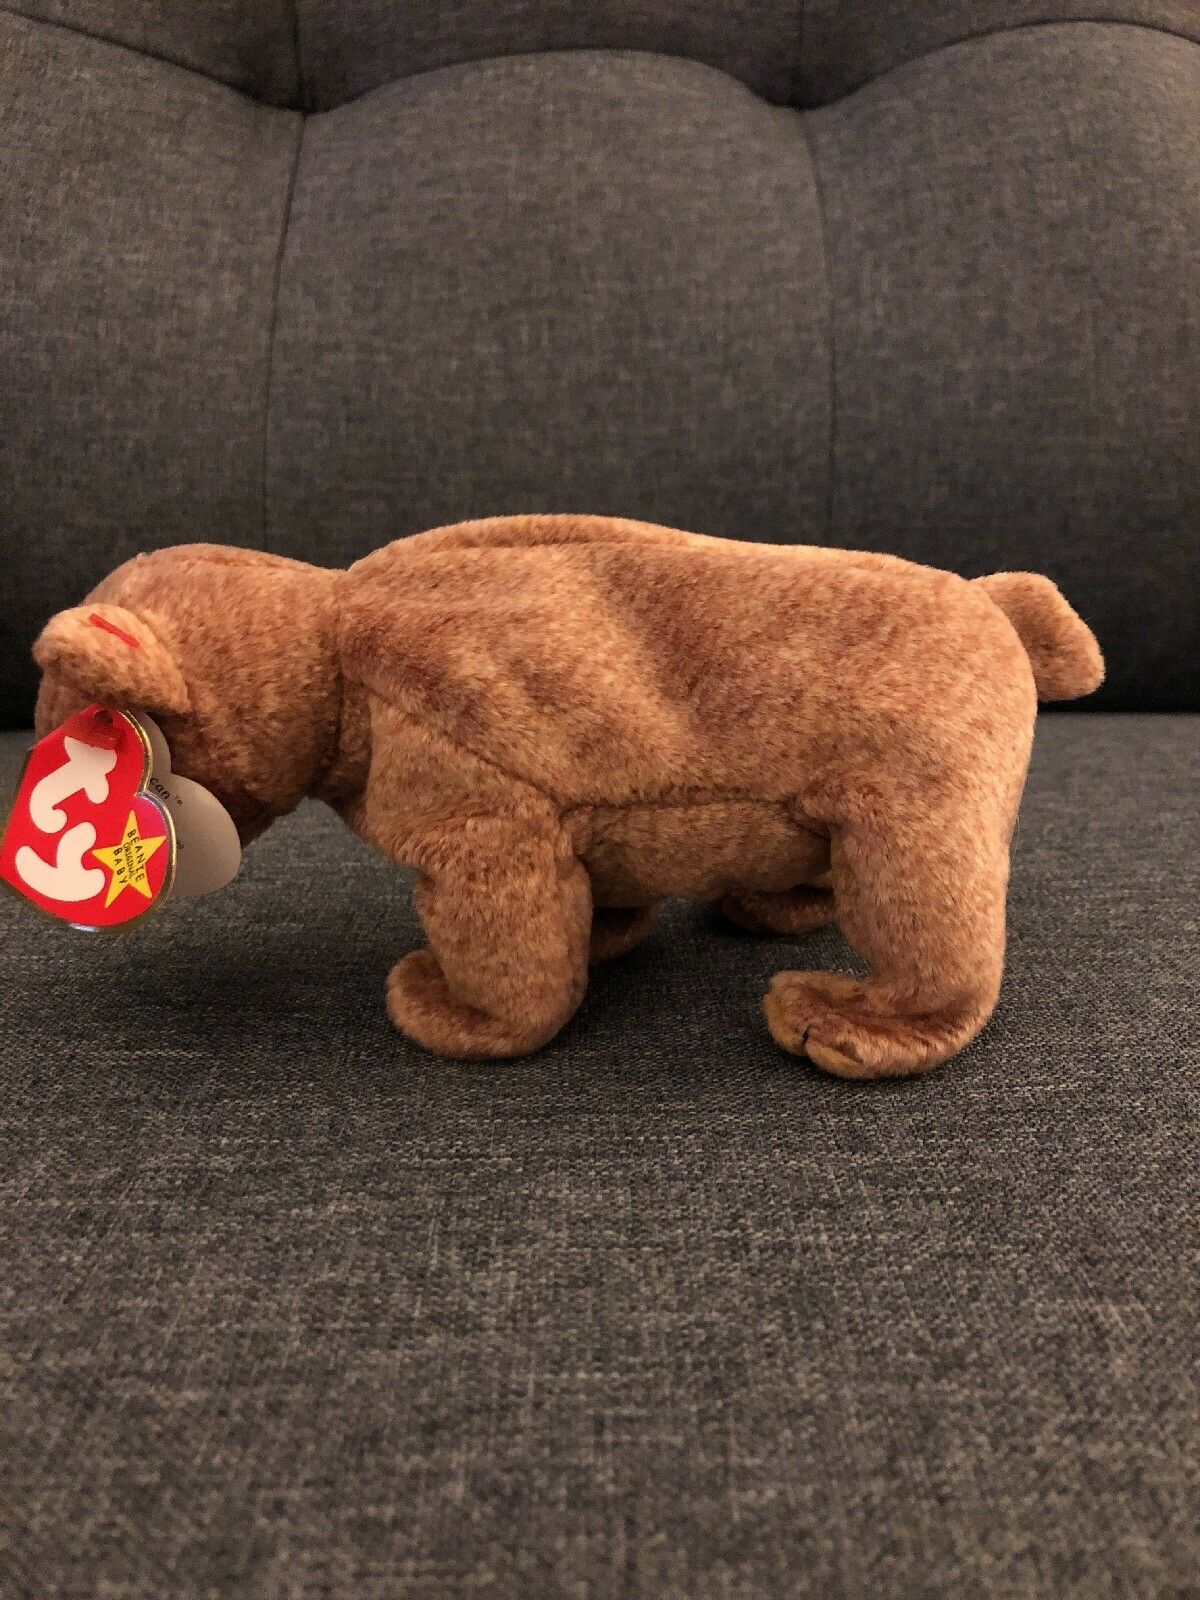 b79d0121a78 ... TY Baby Beanie Baby TY - Pecan The Brown Bear- 1999 51a92a ...